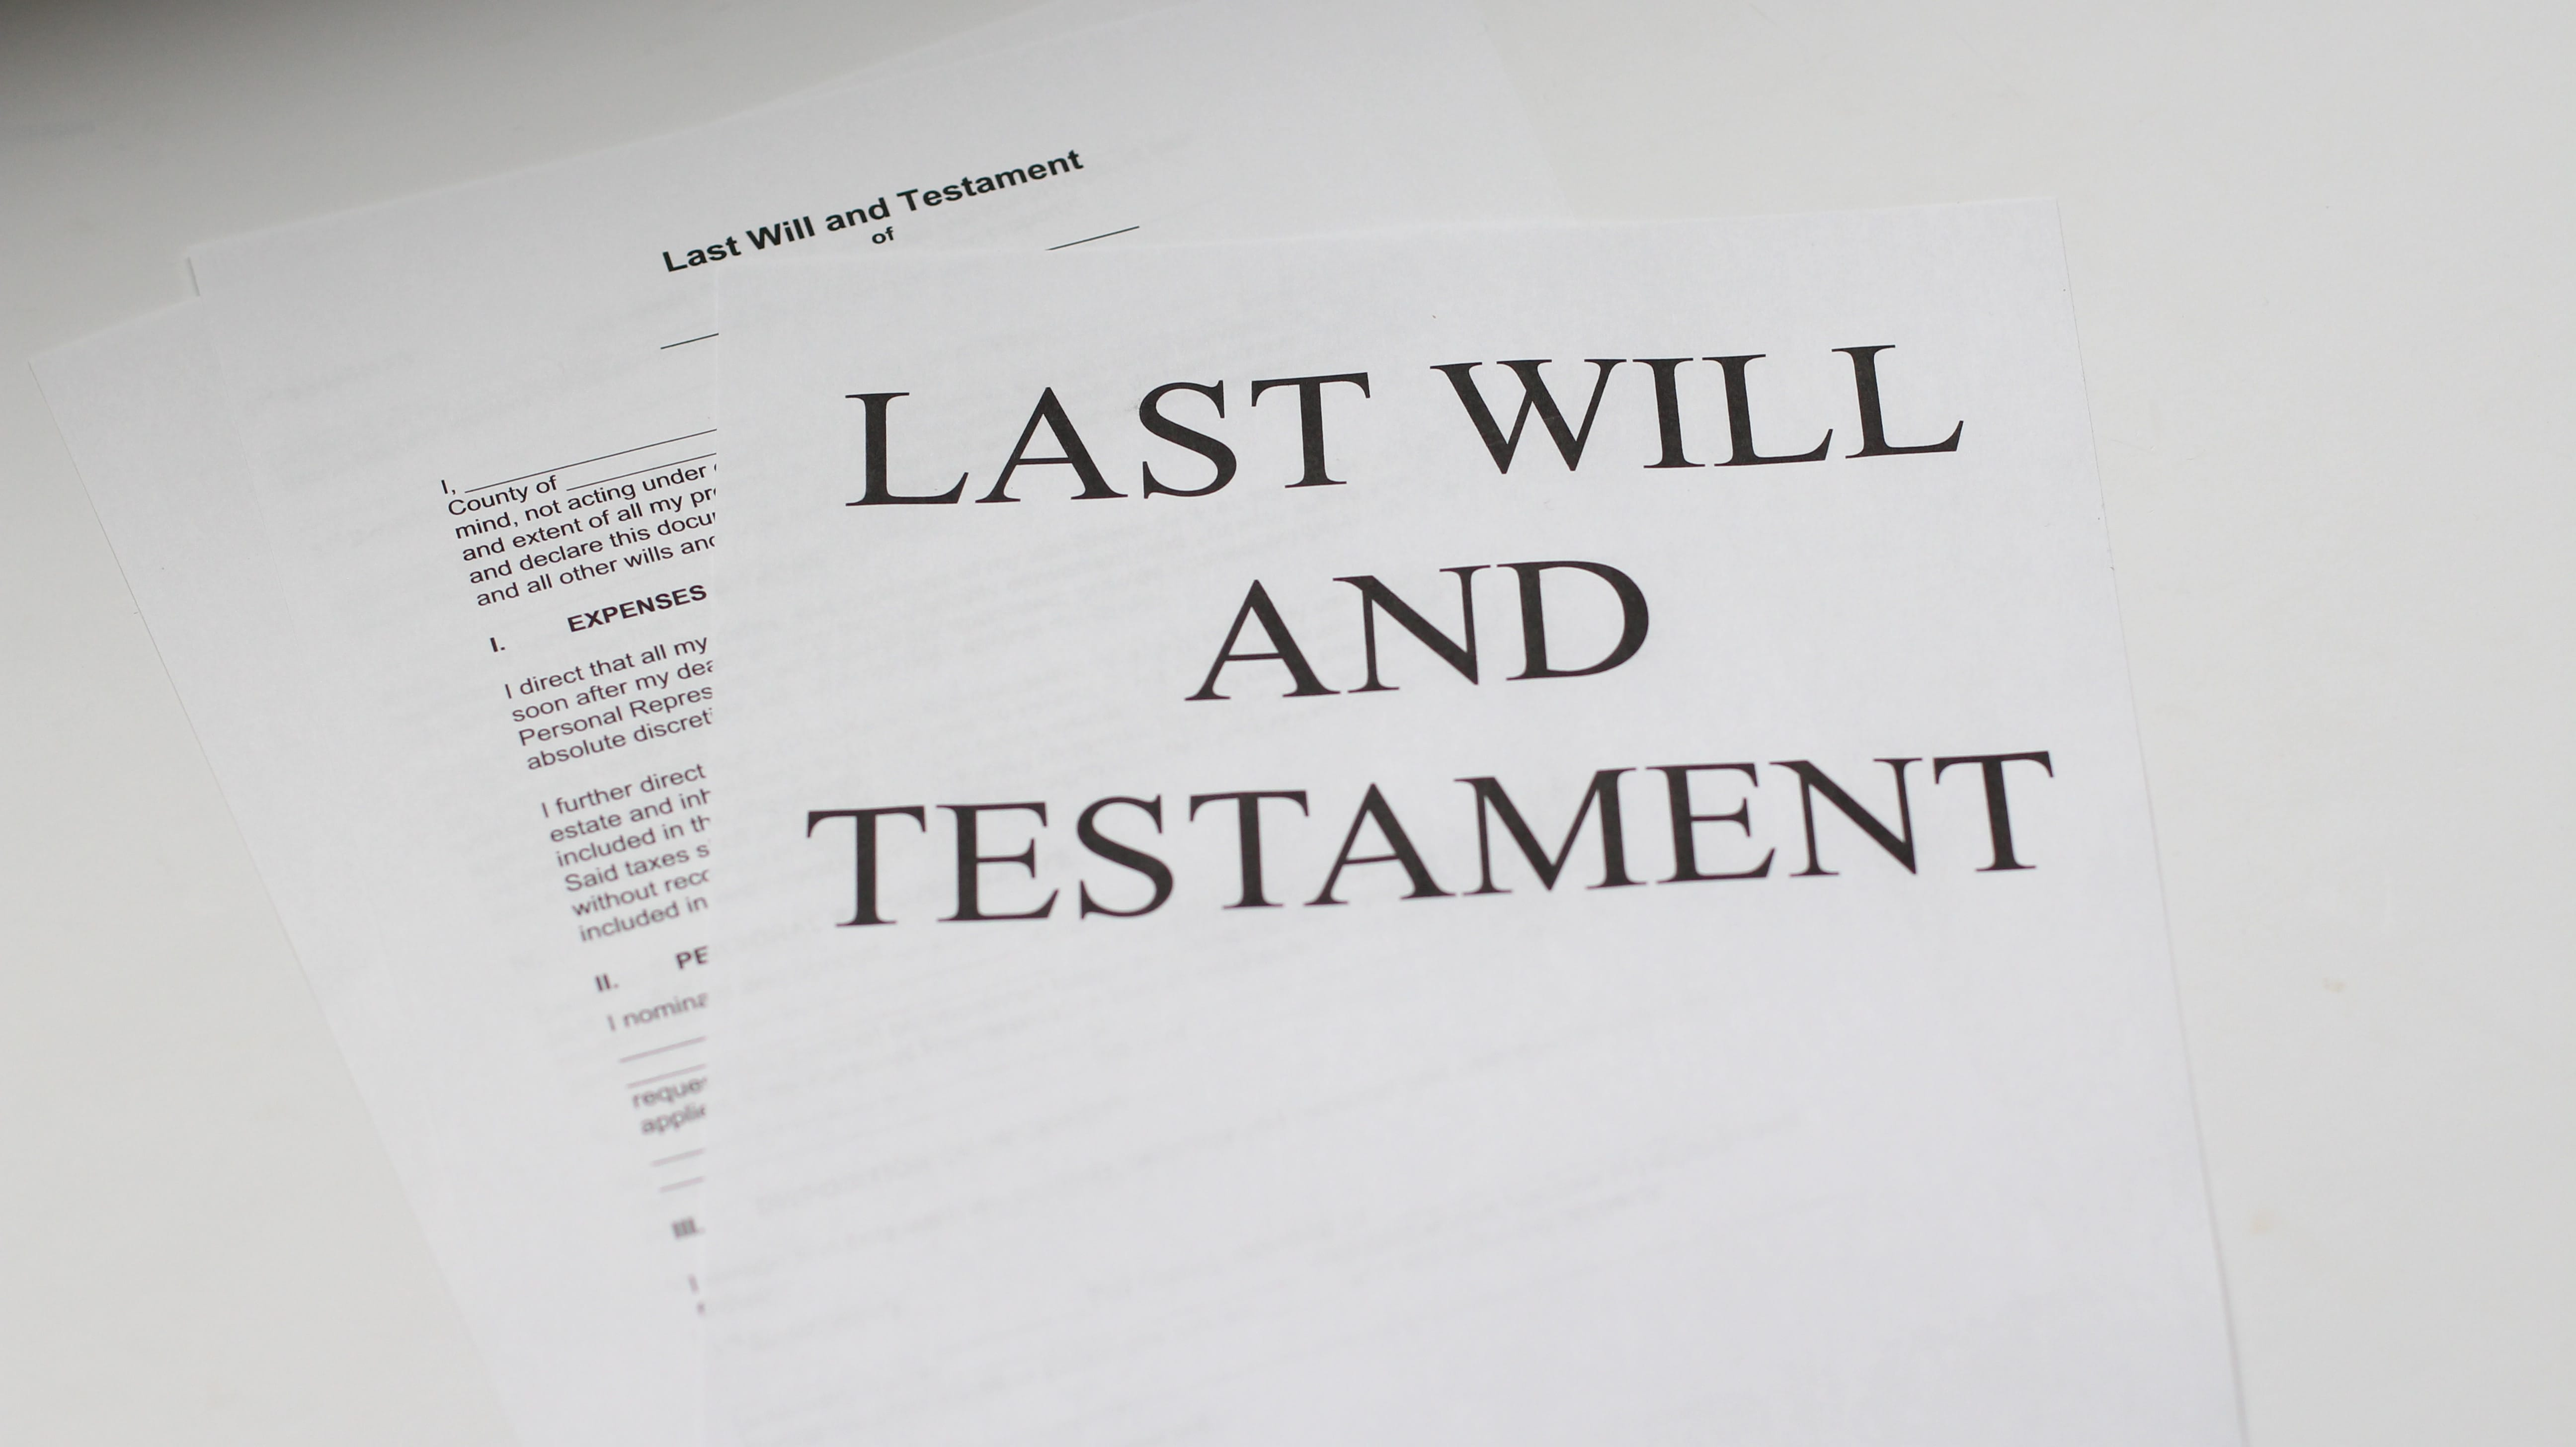 Last will and testament white printer paper; image by Melinda Gimpel, via Unsplash.com.